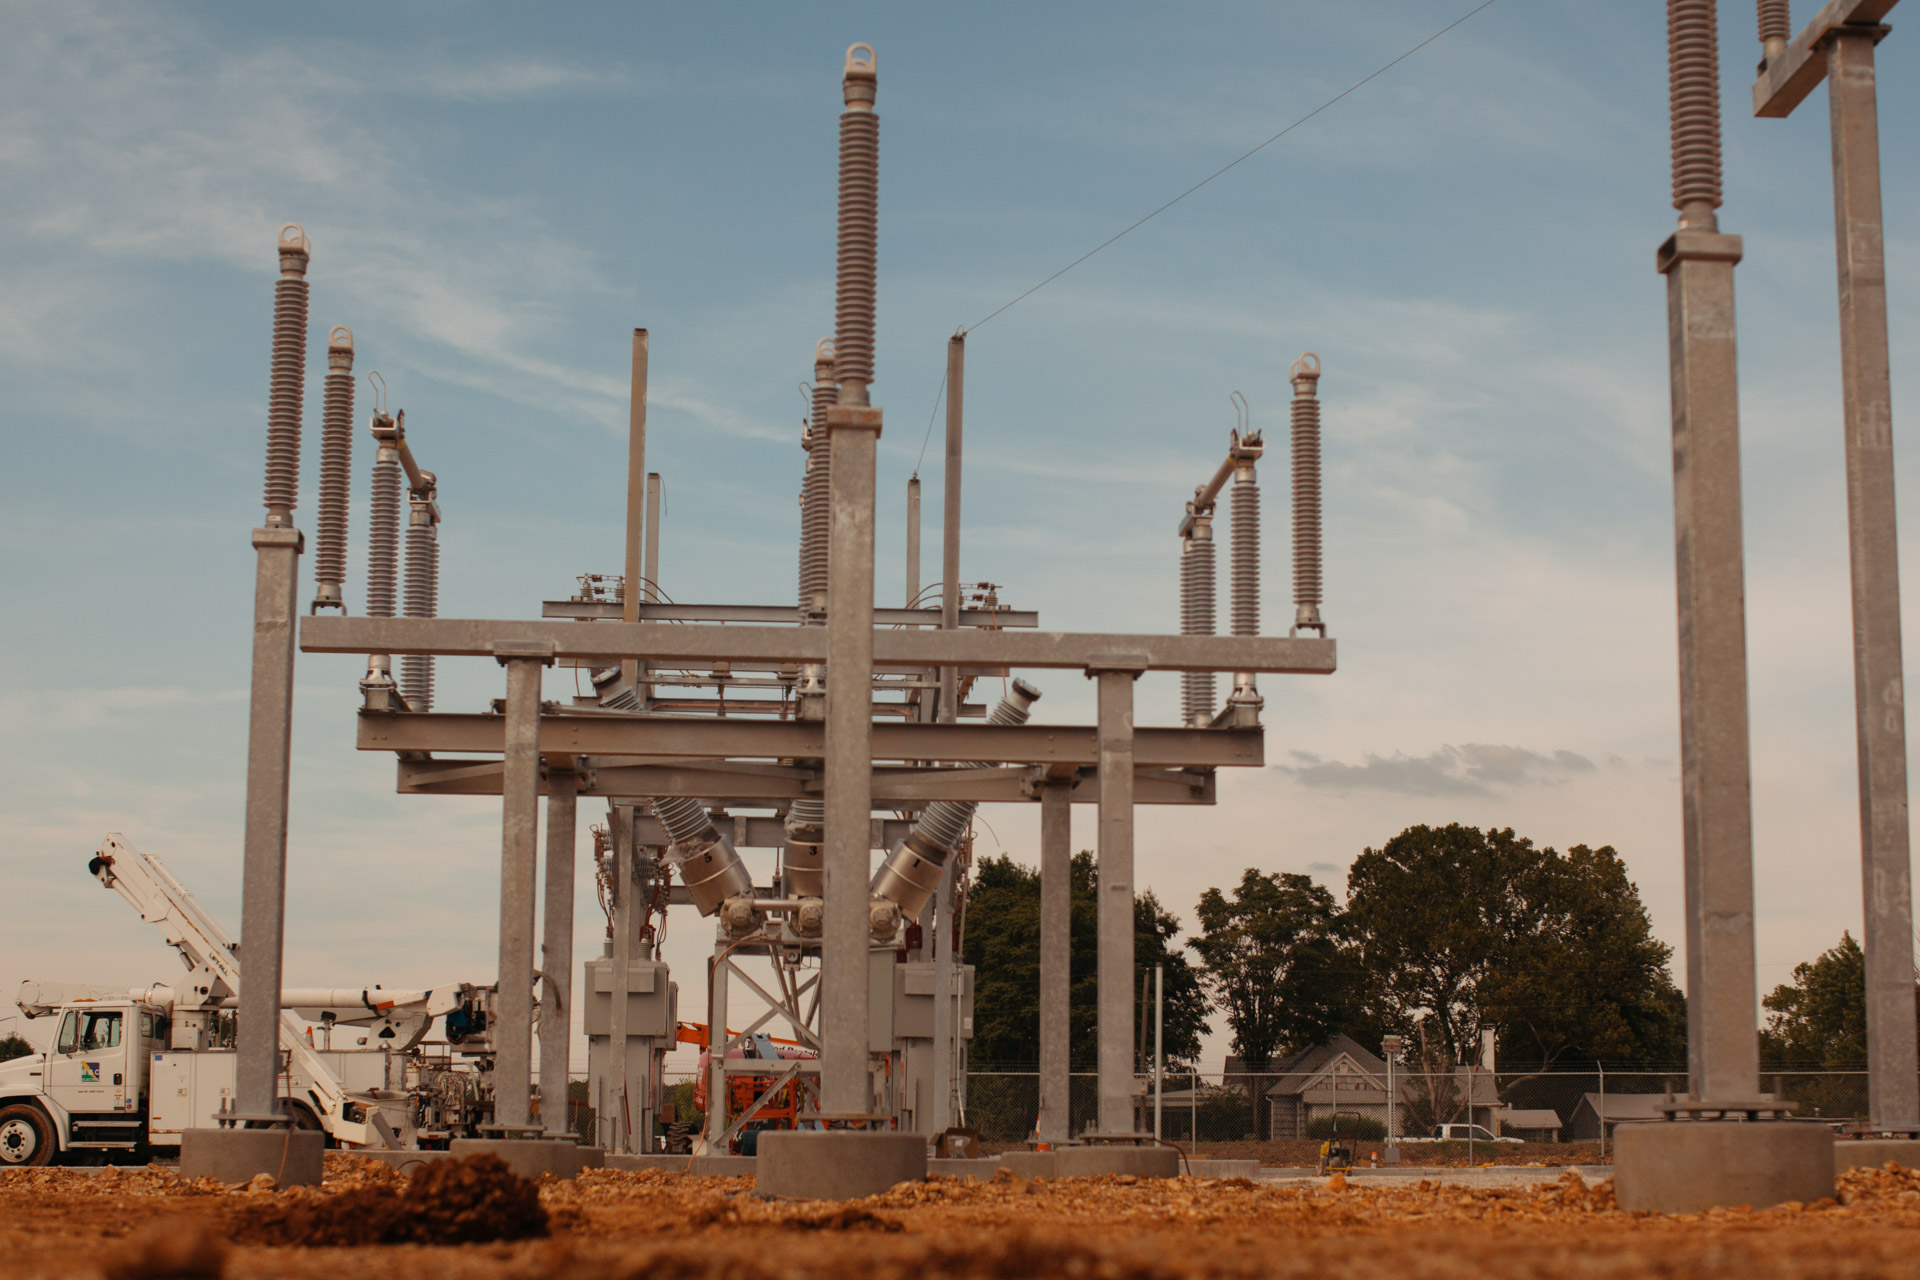 Image of Empire Substation in Joplin, MO during construction with power line added.